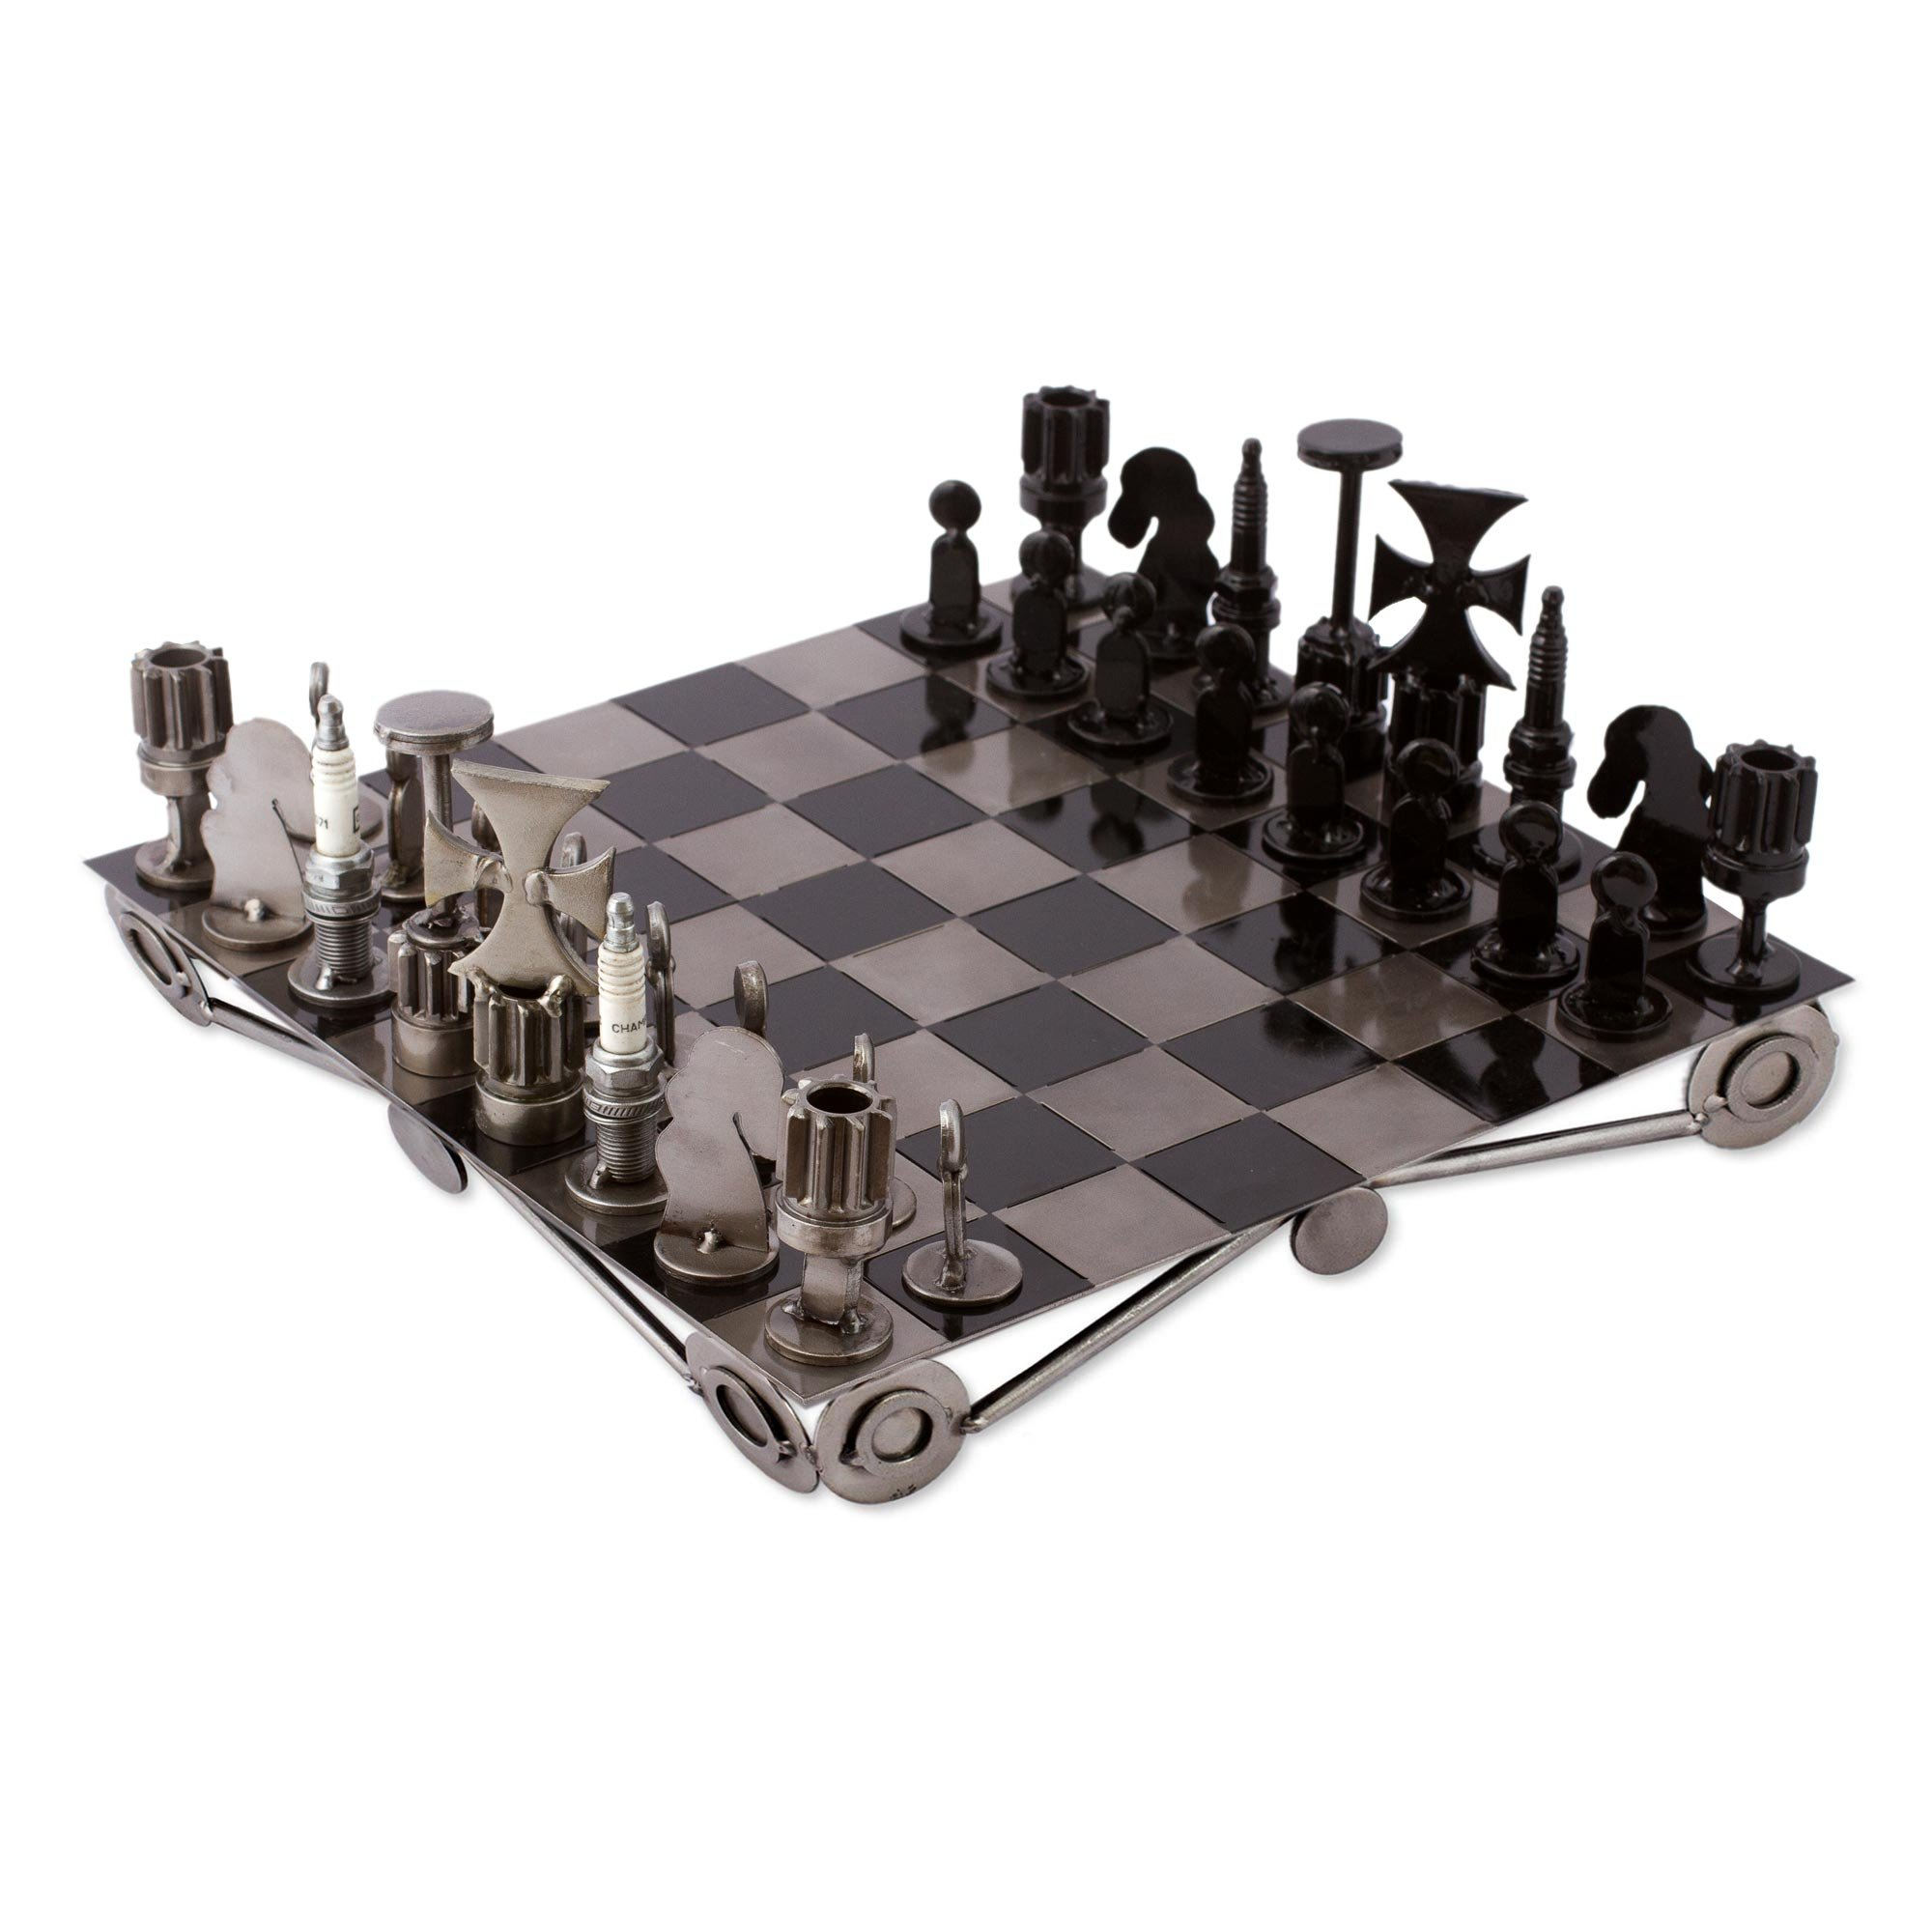 NOVICA Decorative Recycled Metal Handmade Tabletop Chess Set, 'Recycling Challenge' by NOVICA